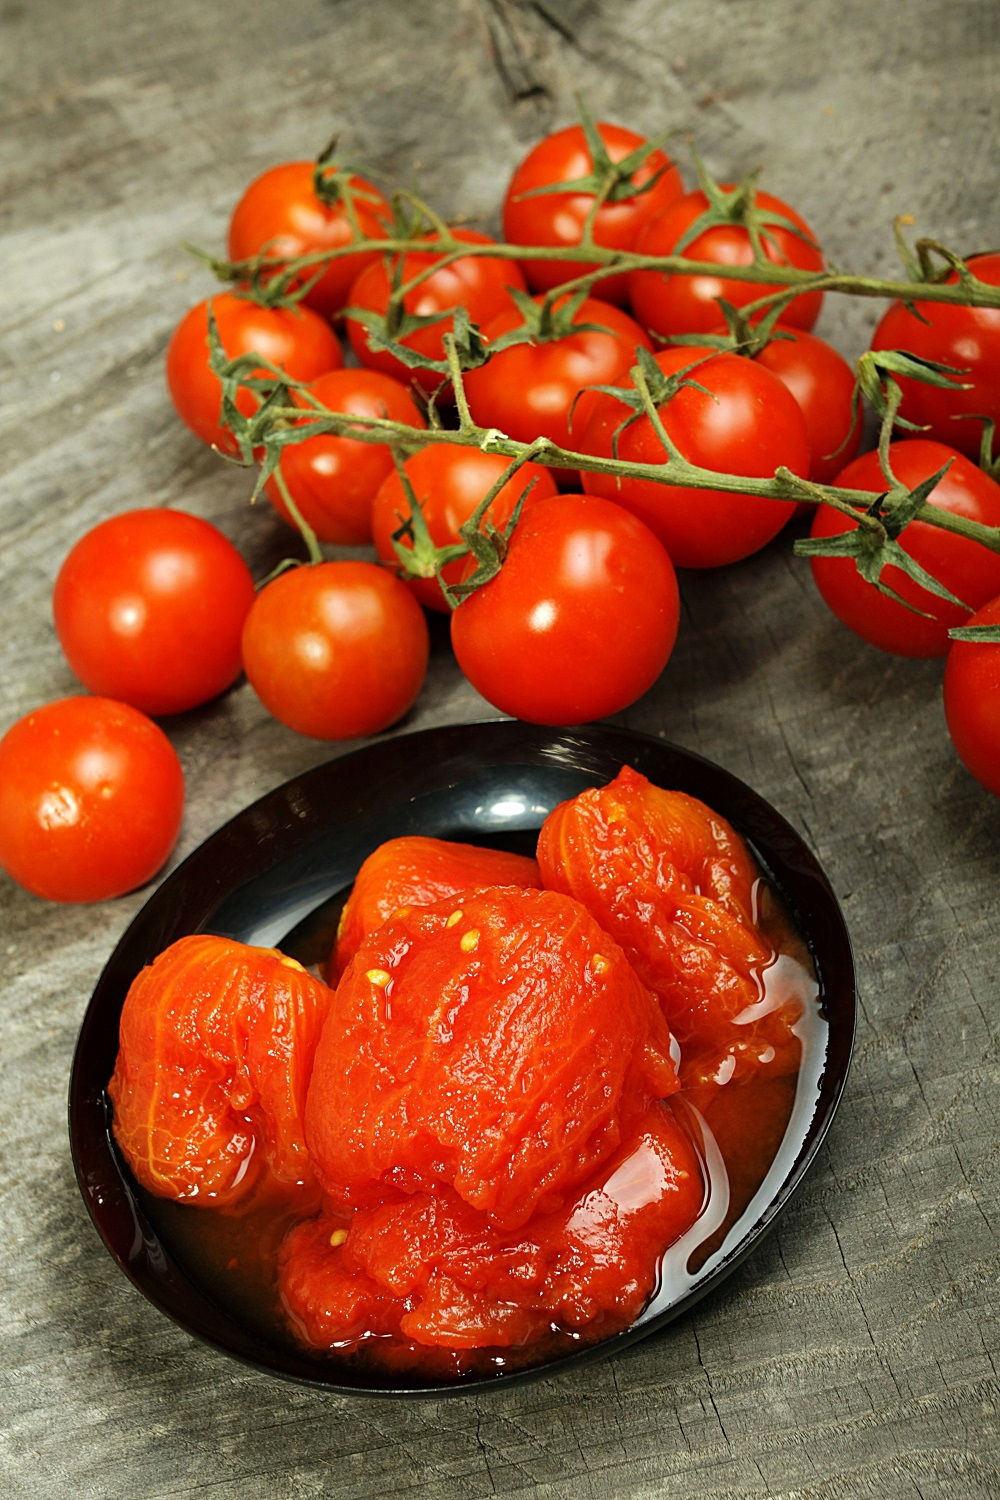 Canned Tomatoes For Pizza Sauce and Tomatoes